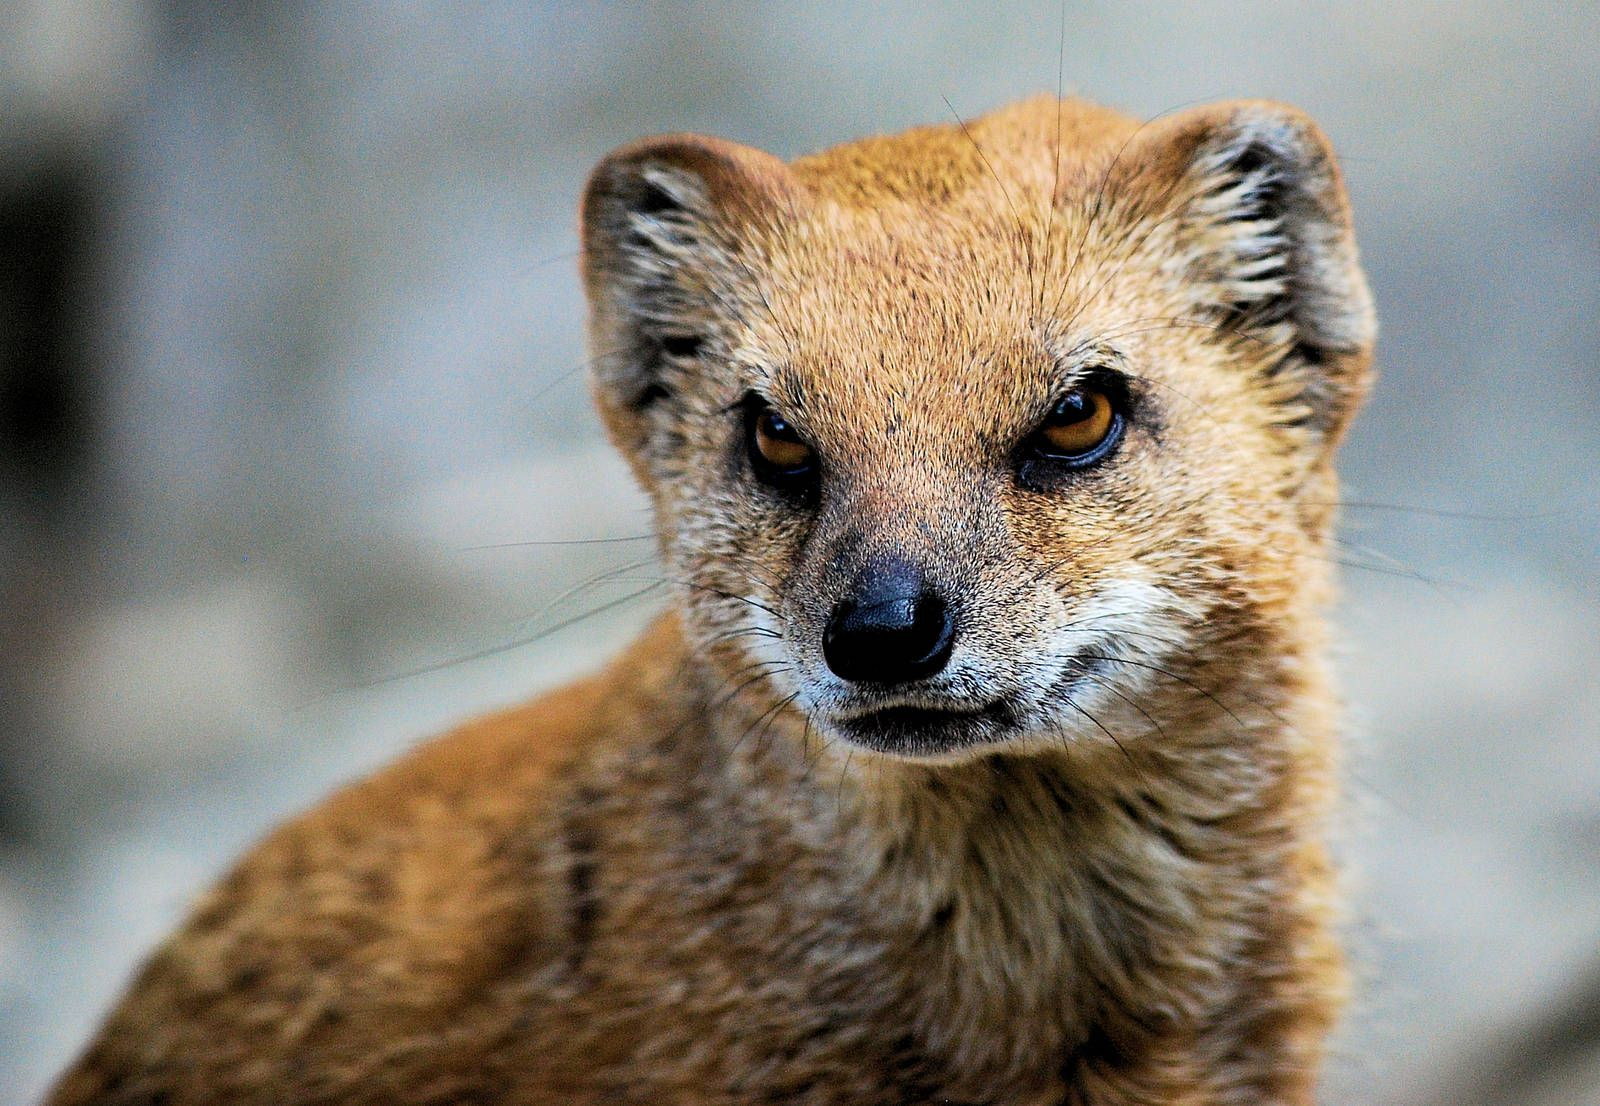 Angry Animals Google Search: Mongoose - Google Search